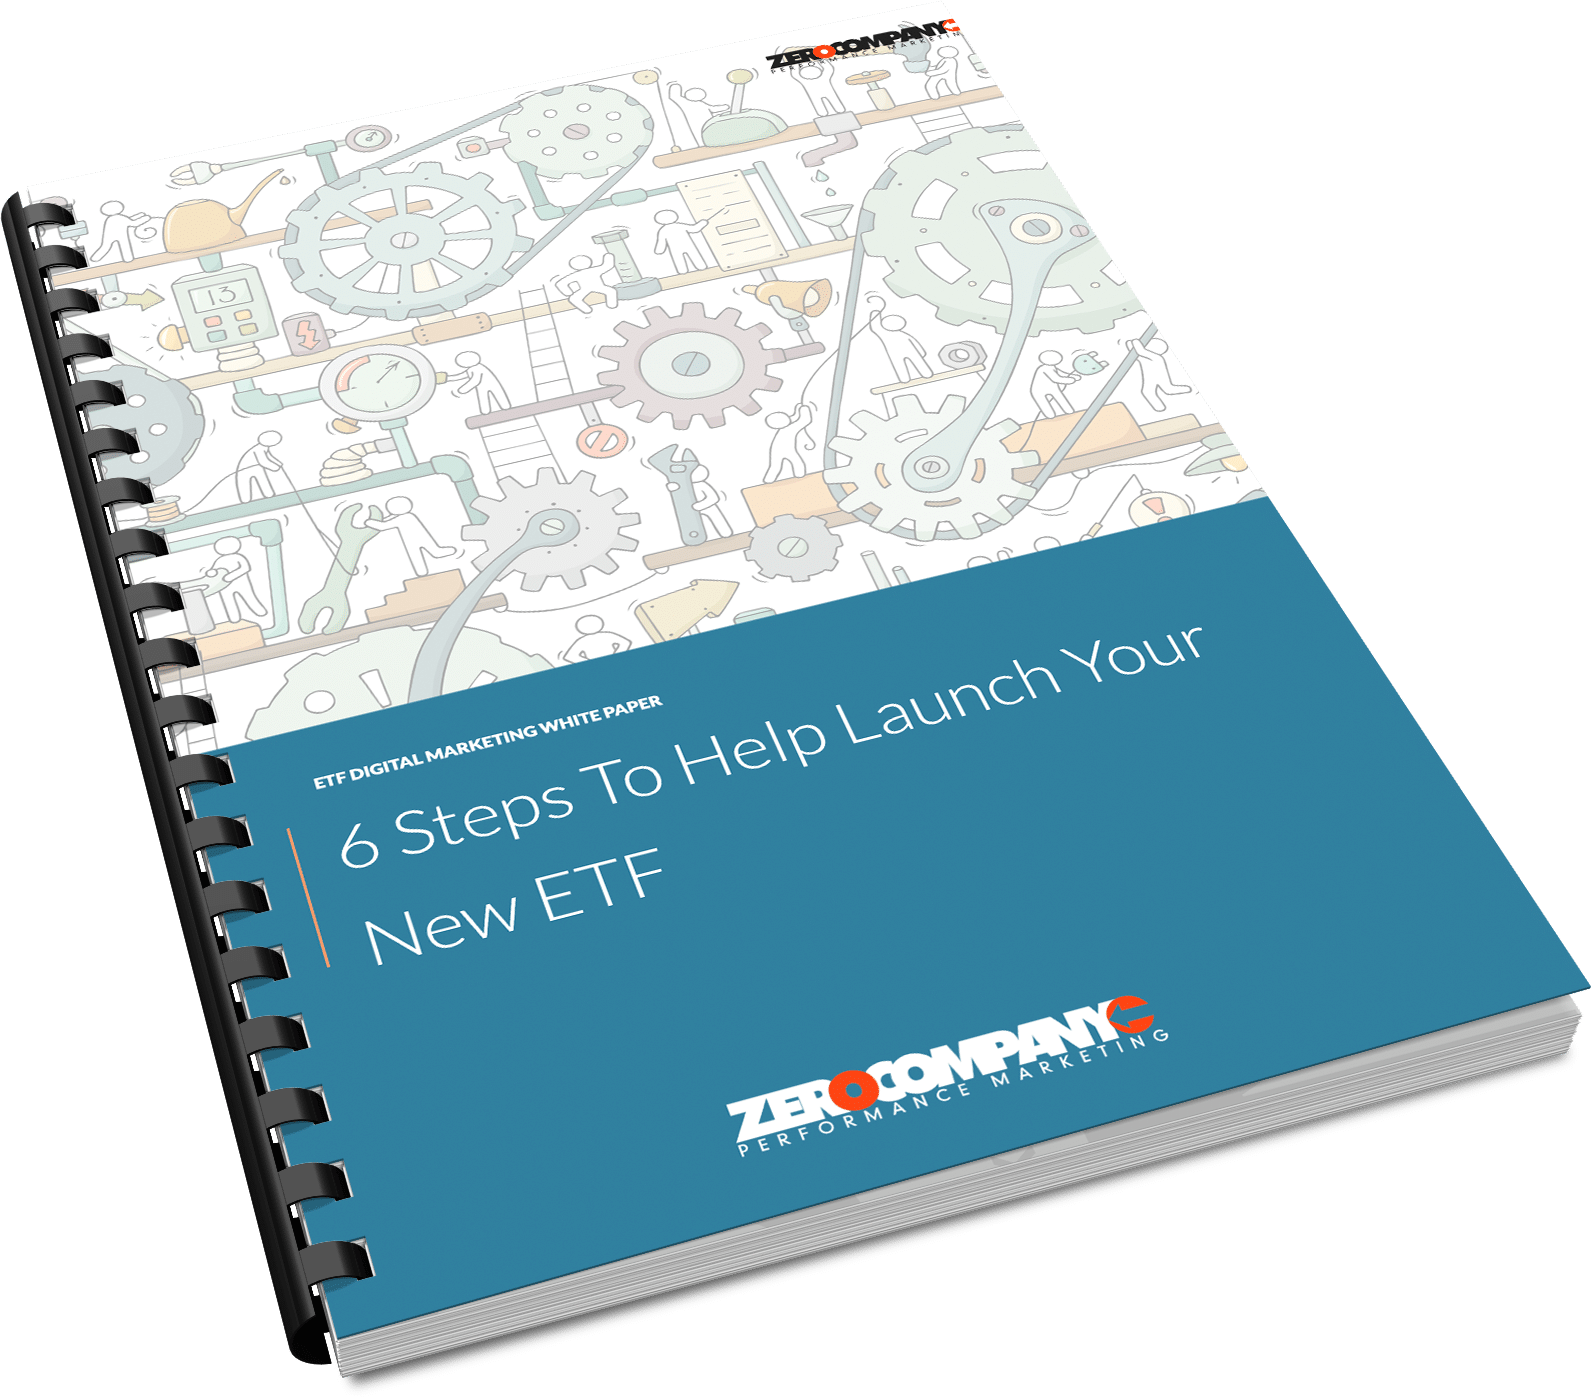 ETF Digital Marketing: 6 Steps To Help Launch Your New ETF